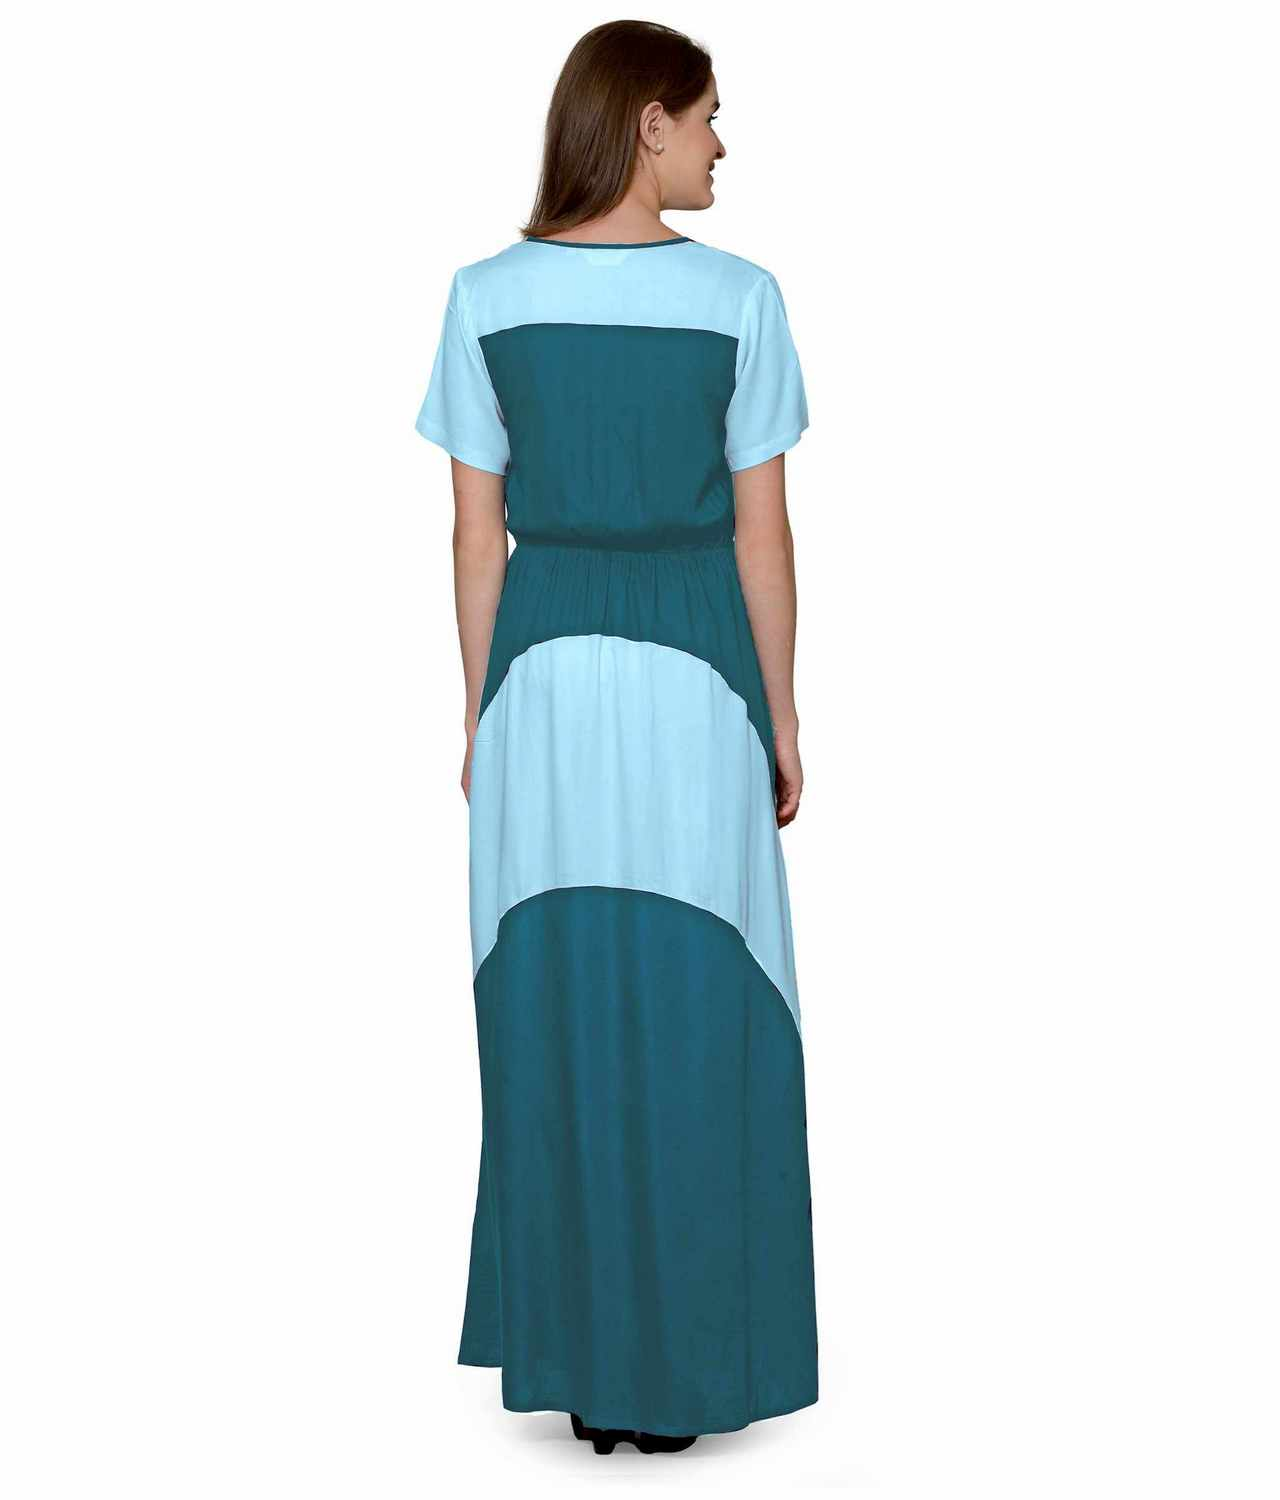 Color Block Slim Fit Maxi Dress Gown in Light Blue:Rama Green